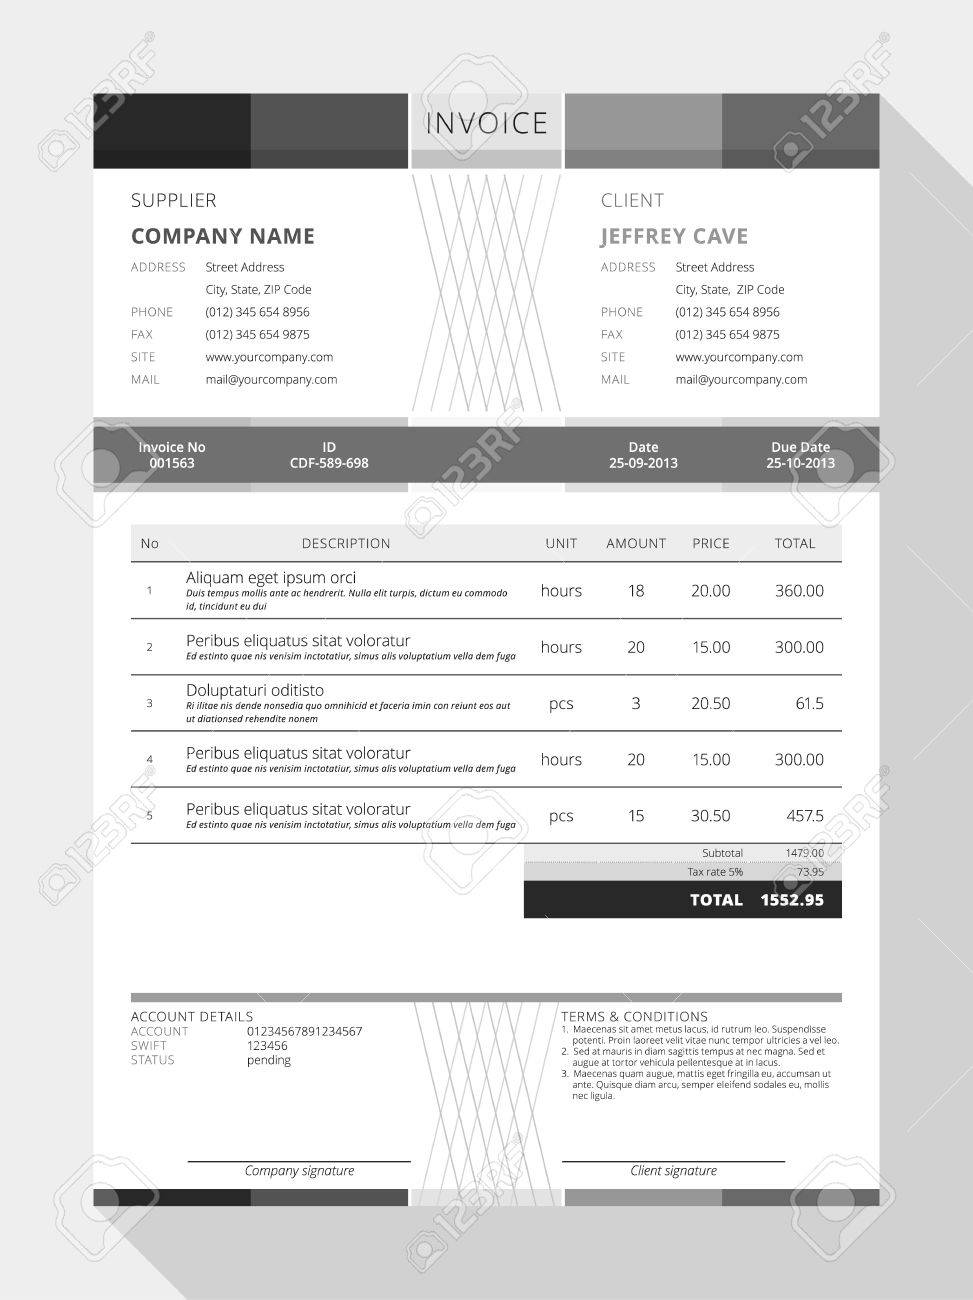 Angkajituus  Surprising Design An Invoice  Professional Graphic Design Invoice  With Exciting Vector Customizable Invoice Form Template Design Vector   Design An Invoice With Enchanting Receipt Invoice Template Free Also Fraudulent Invoices In Addition Po On Invoice And Car Sale Invoice Sample As Well As Online Invoice App Additionally Shell Invoice From Happytomco With Angkajituus  Exciting Design An Invoice  Professional Graphic Design Invoice  With Enchanting Vector Customizable Invoice Form Template Design Vector   Design An Invoice And Surprising Receipt Invoice Template Free Also Fraudulent Invoices In Addition Po On Invoice From Happytomco